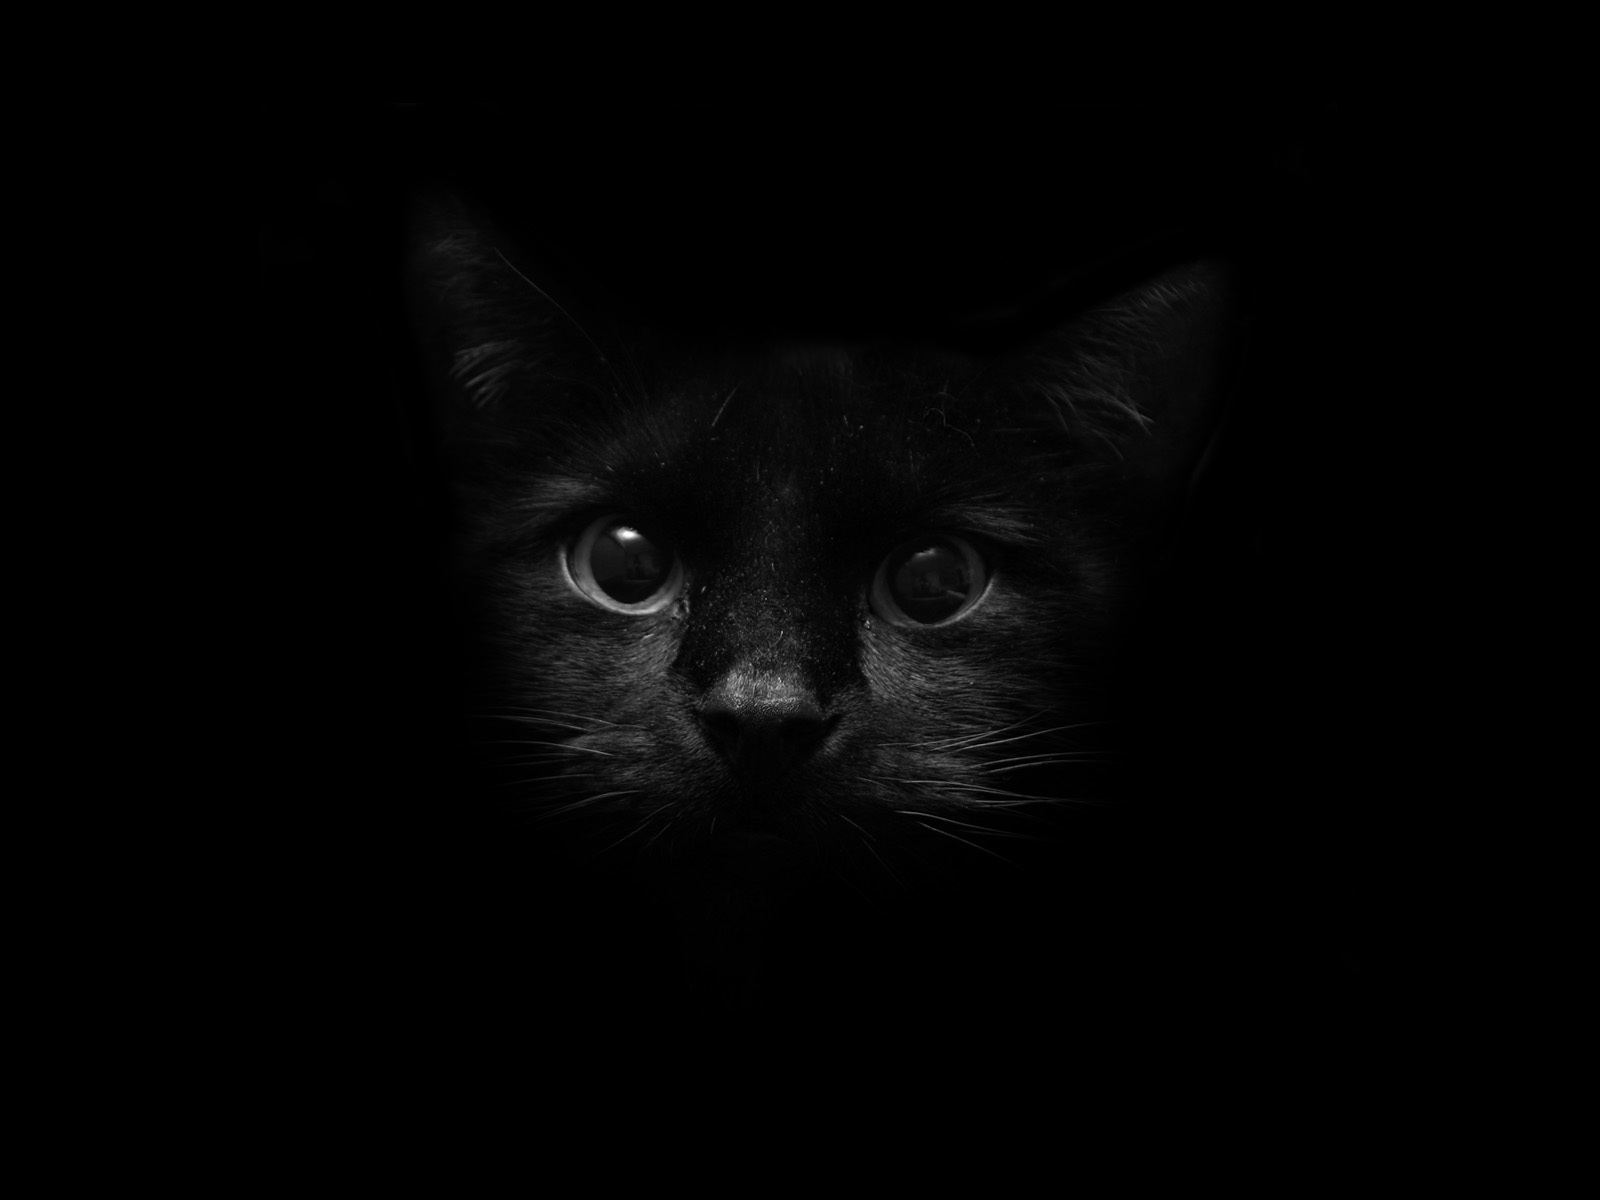 sarahplove 画像 black cat hd 壁紙 and background 写真 19877395